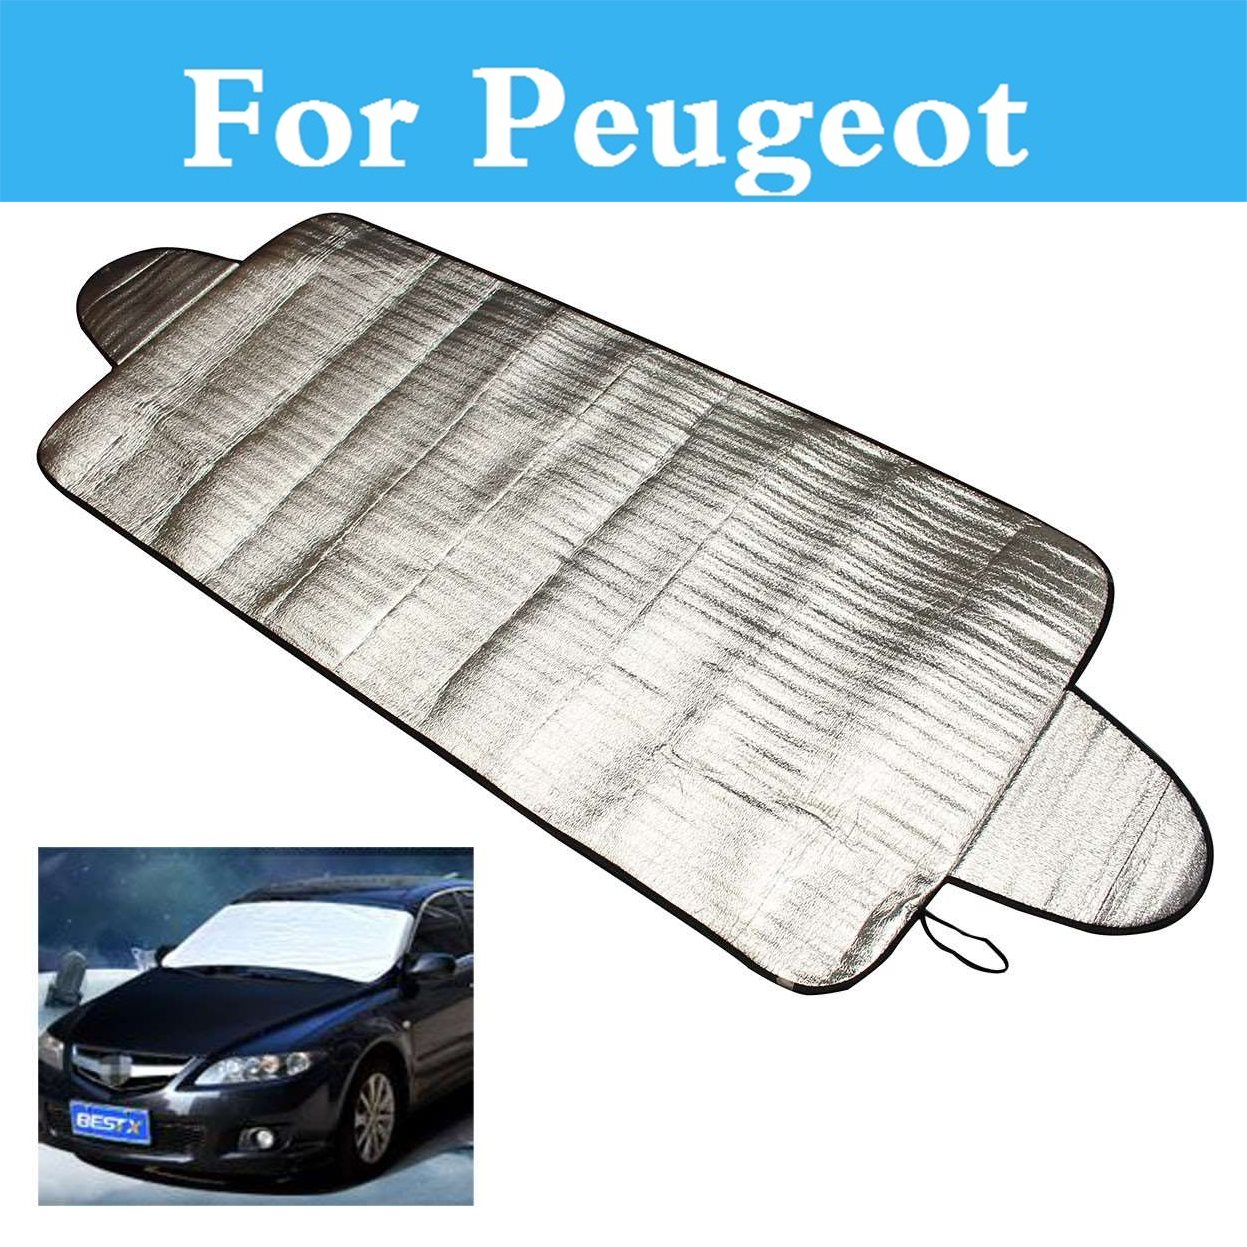 Car Interior Car Windshield Anti Snow Shade Cover Protector For <font><b>Peugeot</b></font> 301 307 3008 1007 107 108 2008 206 207 <font><b>208</b></font> <font><b>208</b></font> <font><b>Gti</b></font> image